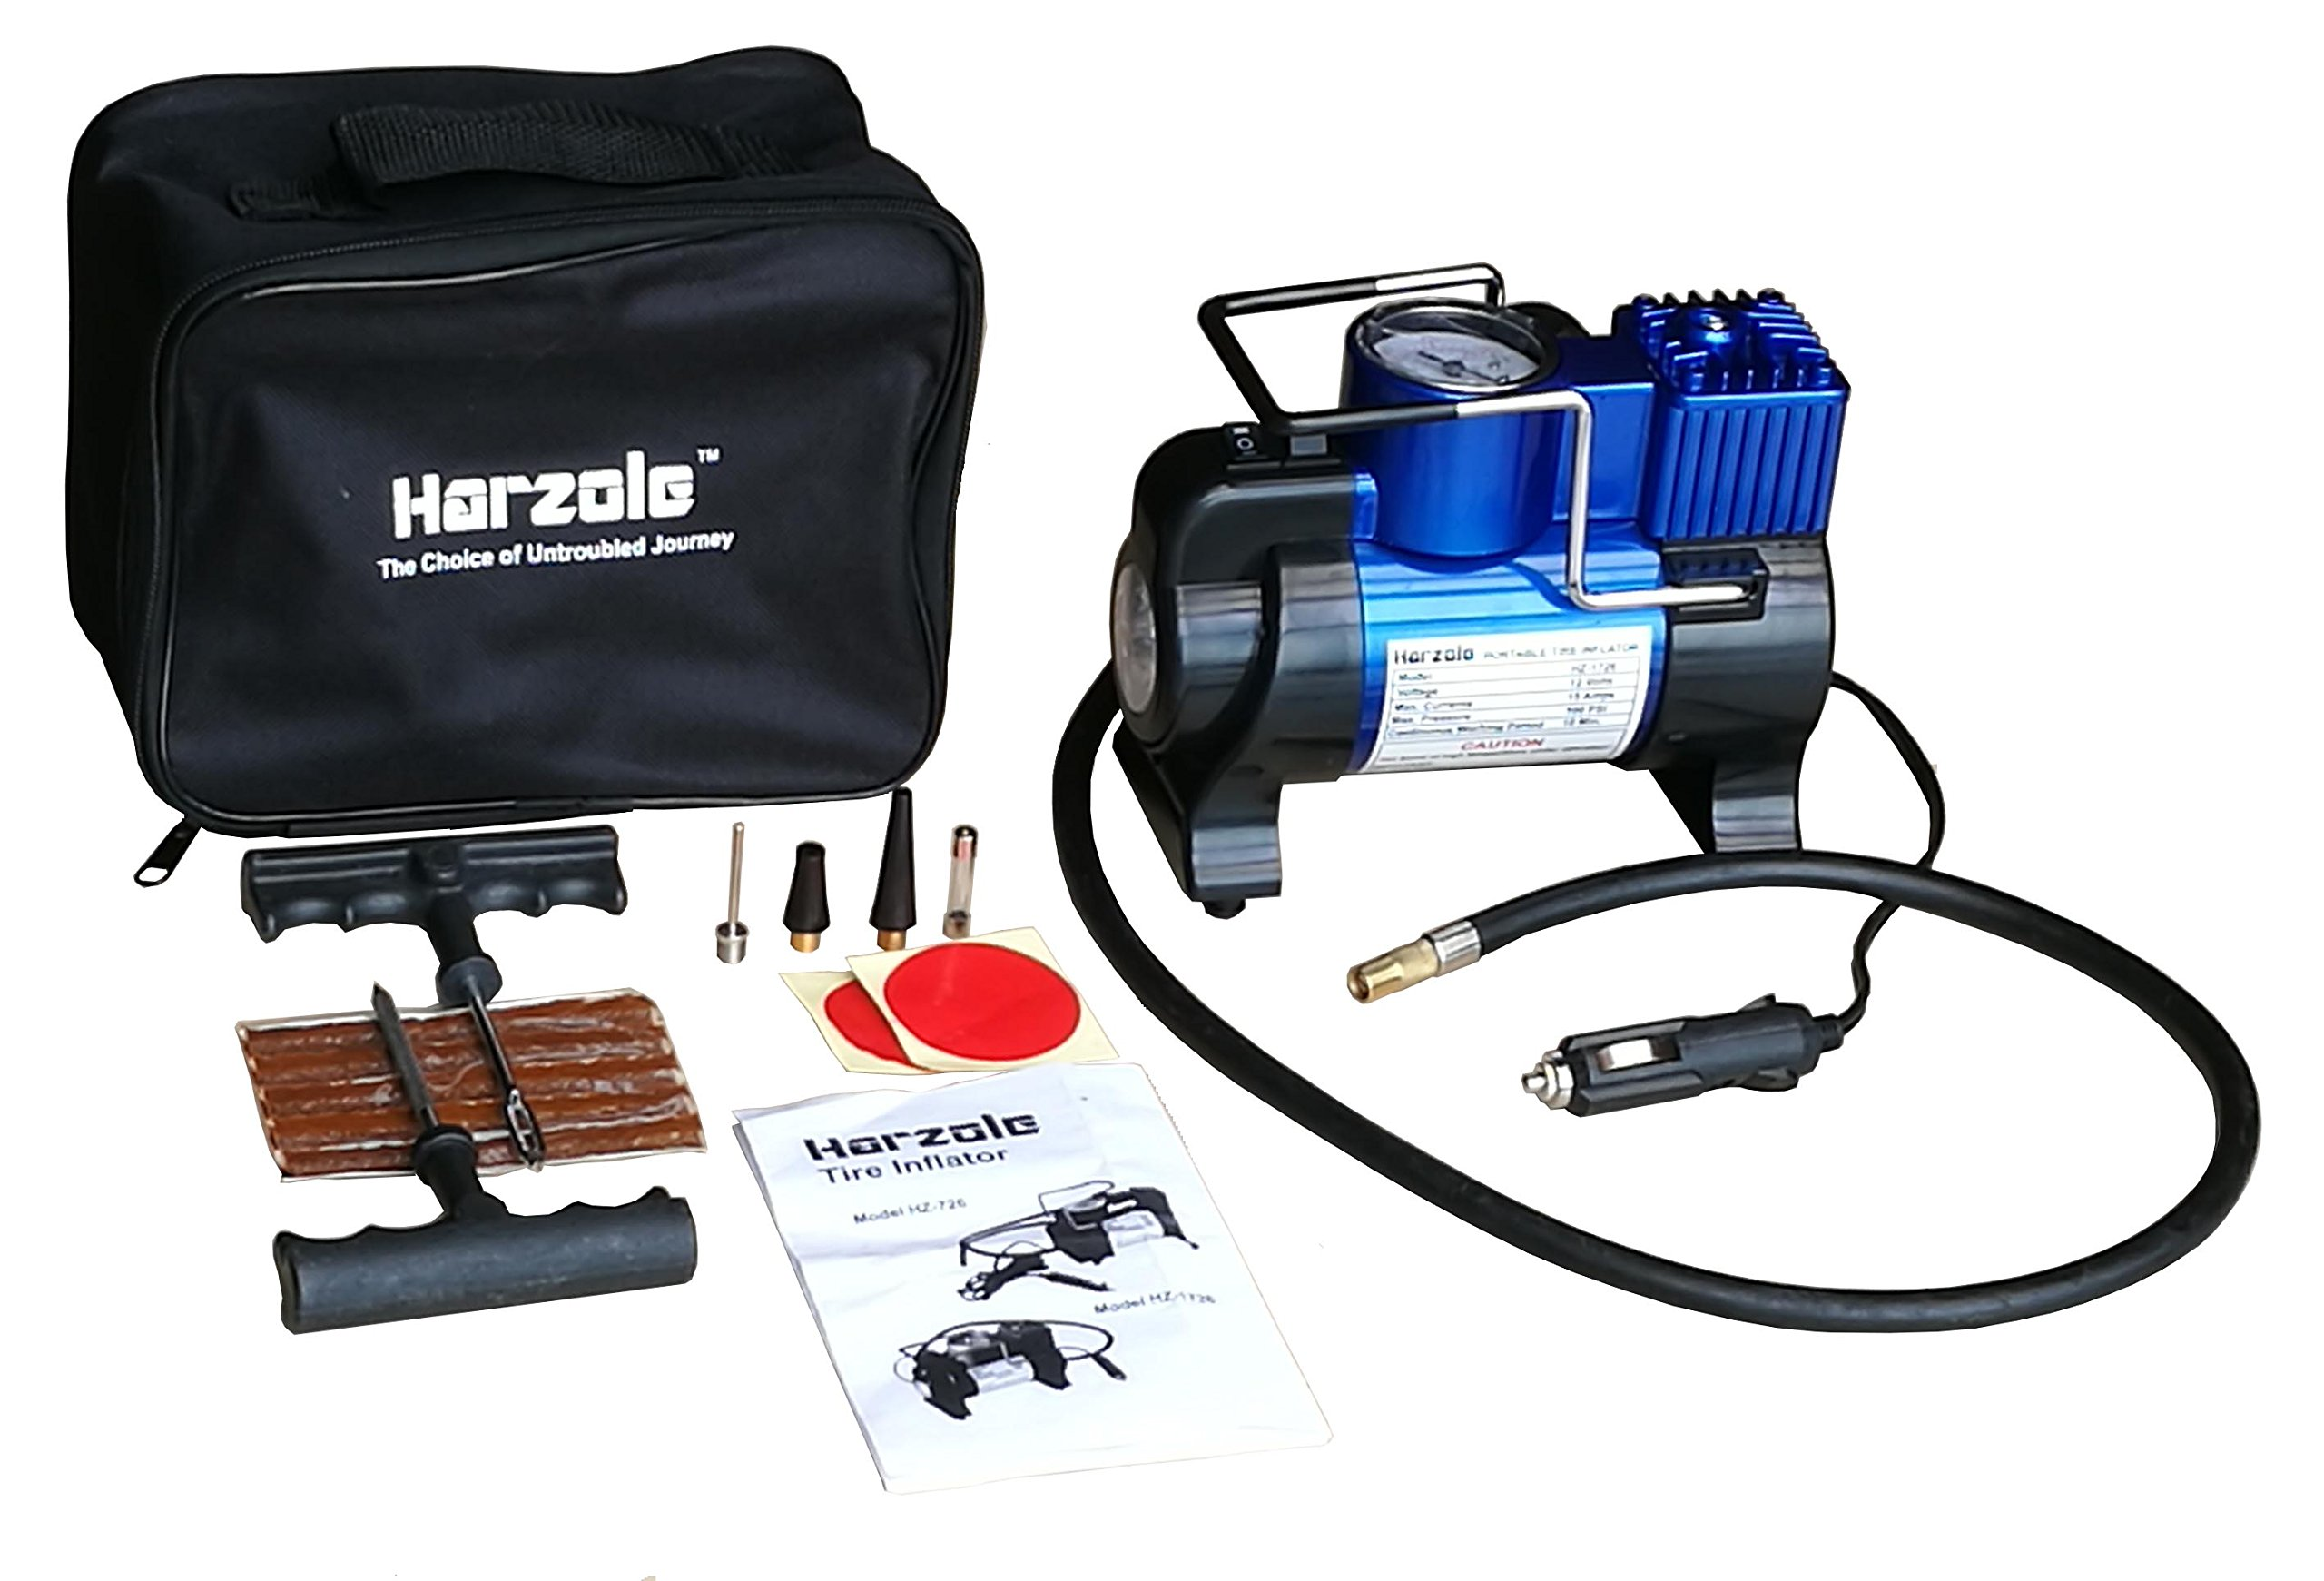 Harzole HZ-1726B DC 12V Car Air Pump, Tire Inflator, Portable Air Compressor Kit with LED Lighter HZ-1726, with tire Repair kit HZ-420B